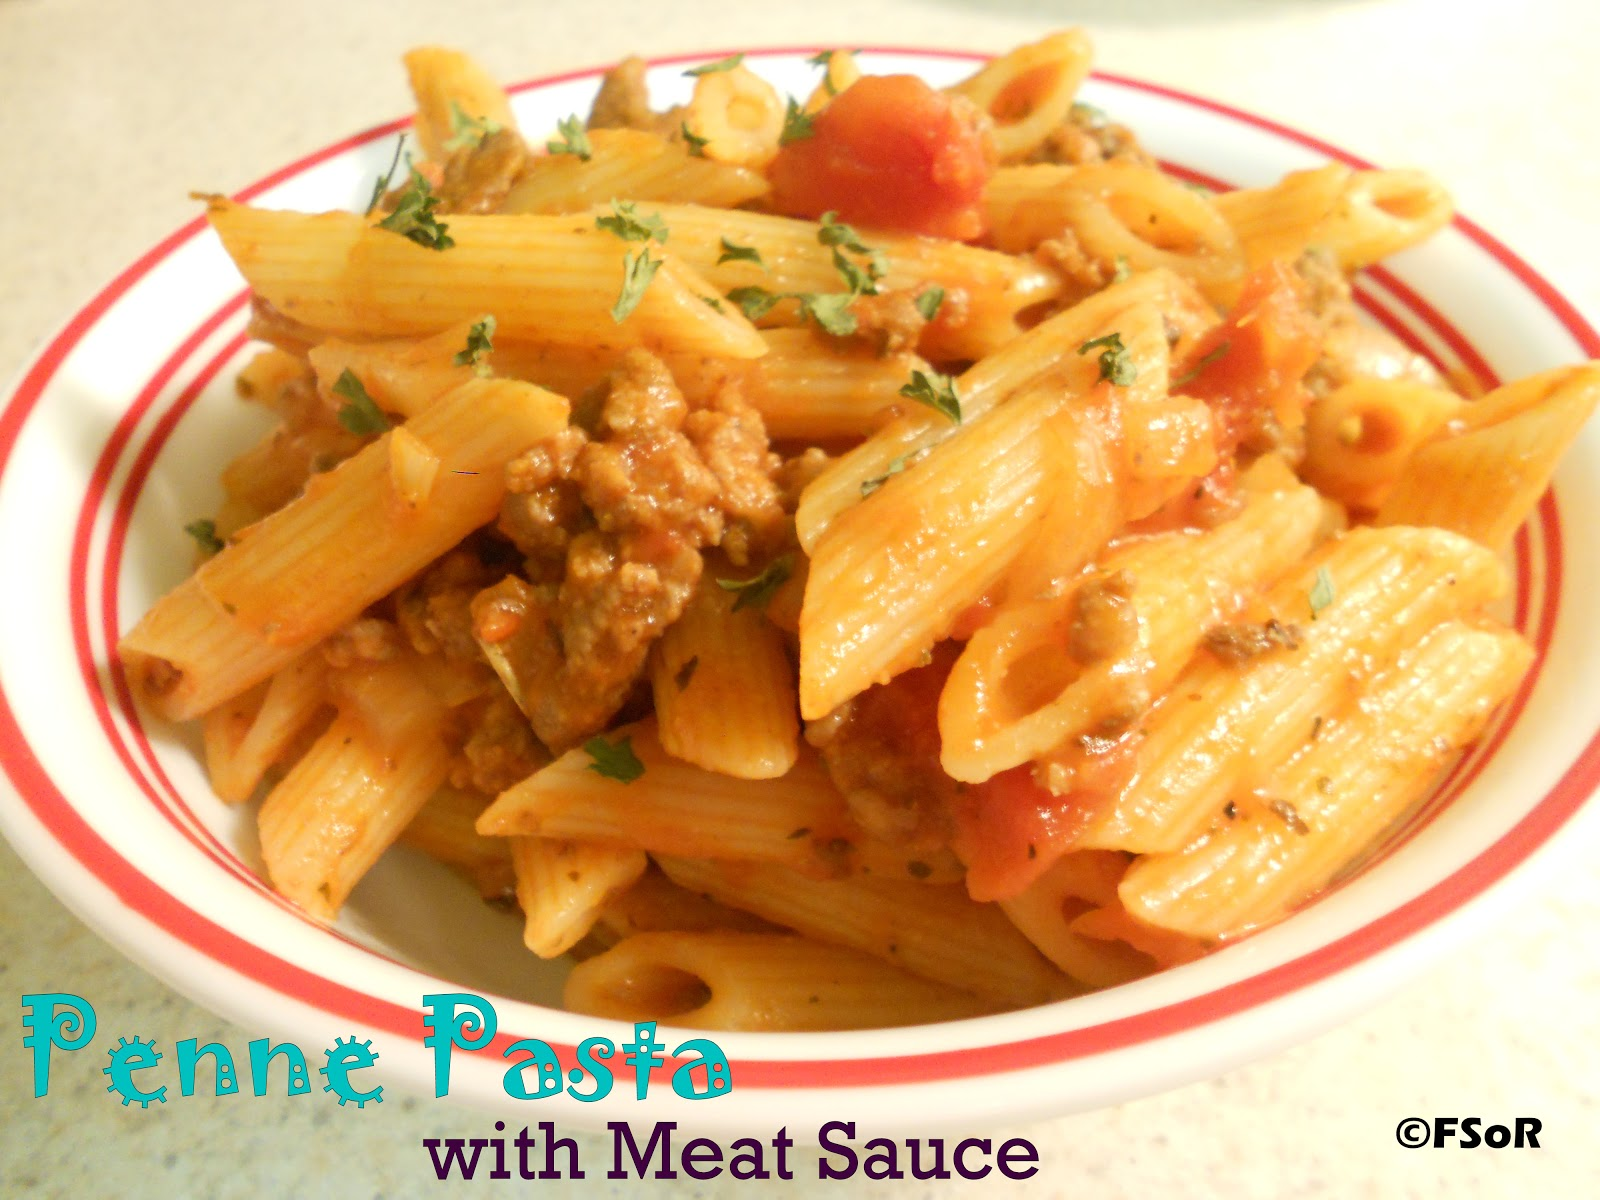 Penne Pasta with Meat Sauce | A quick, simple dish that's meat sauce ...